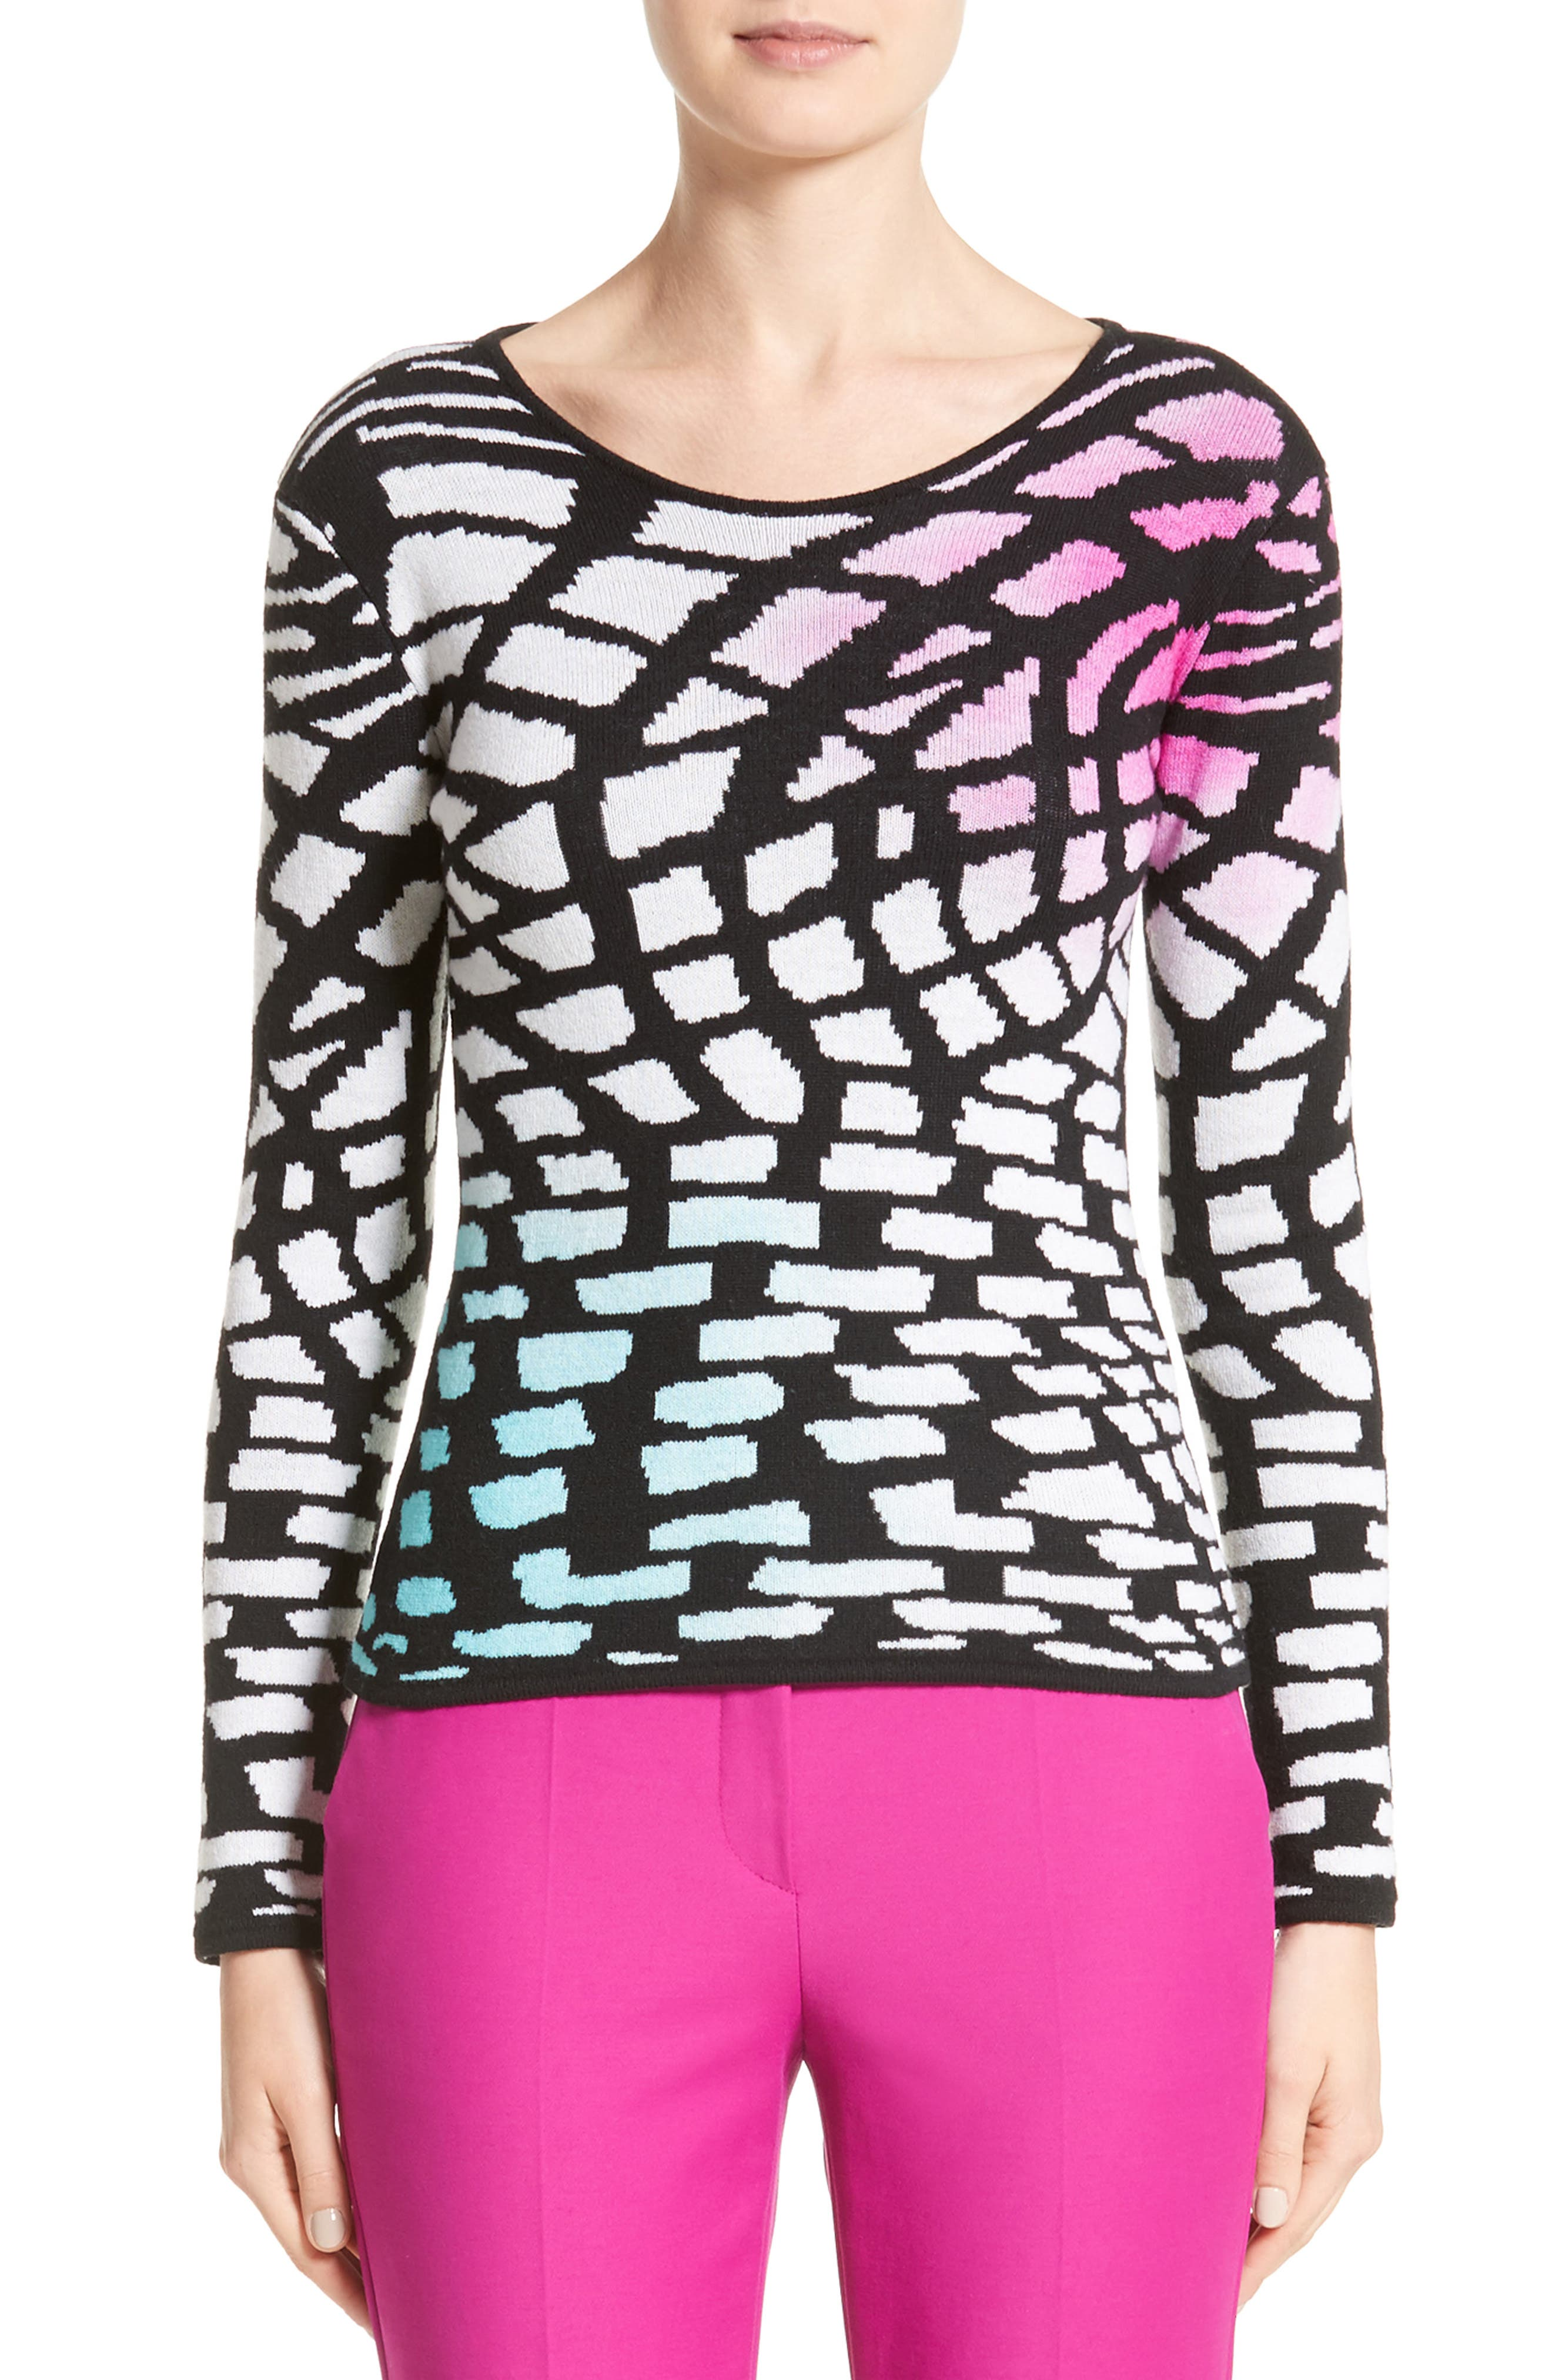 Intarsia Knit Wool & Cashmere Sweater,                         Main,                         color, Black/ White